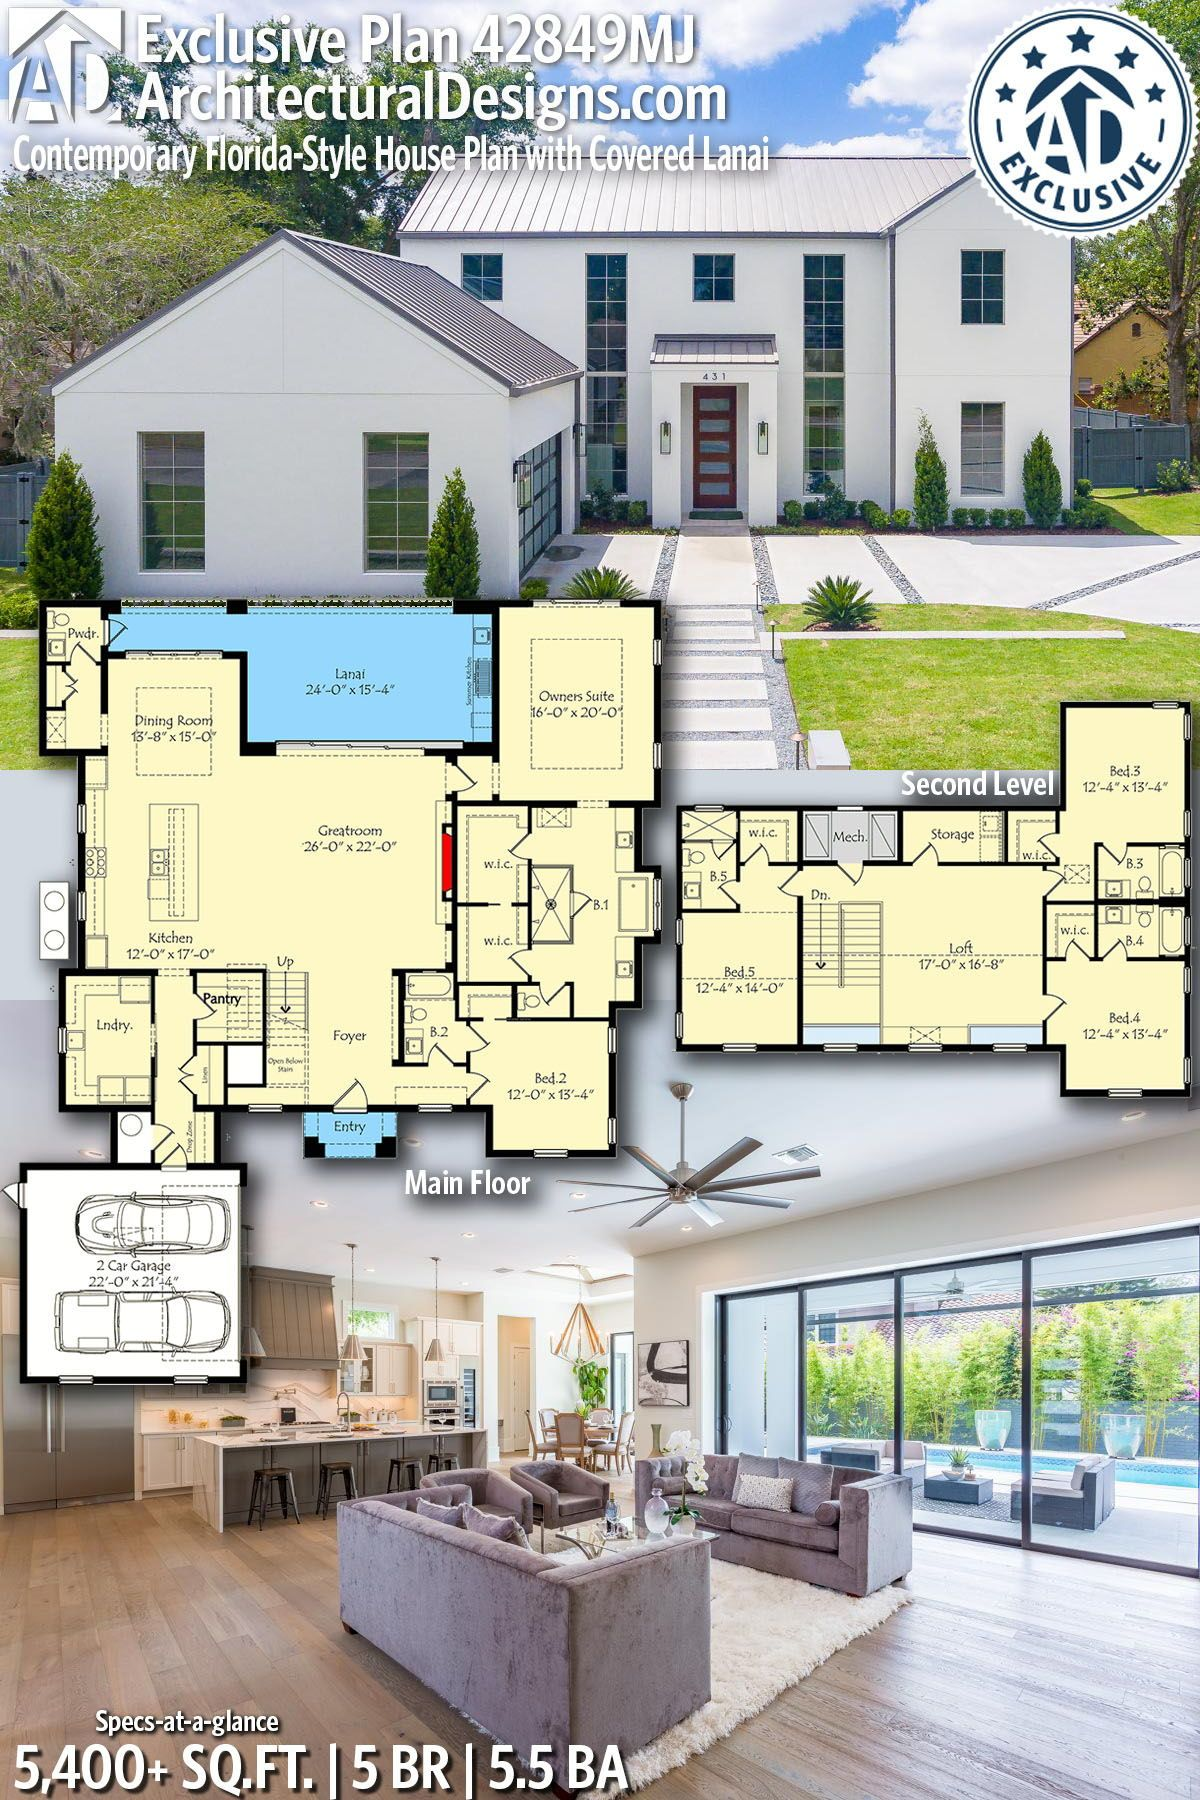 15+ Florida style home plans ideas in 2021